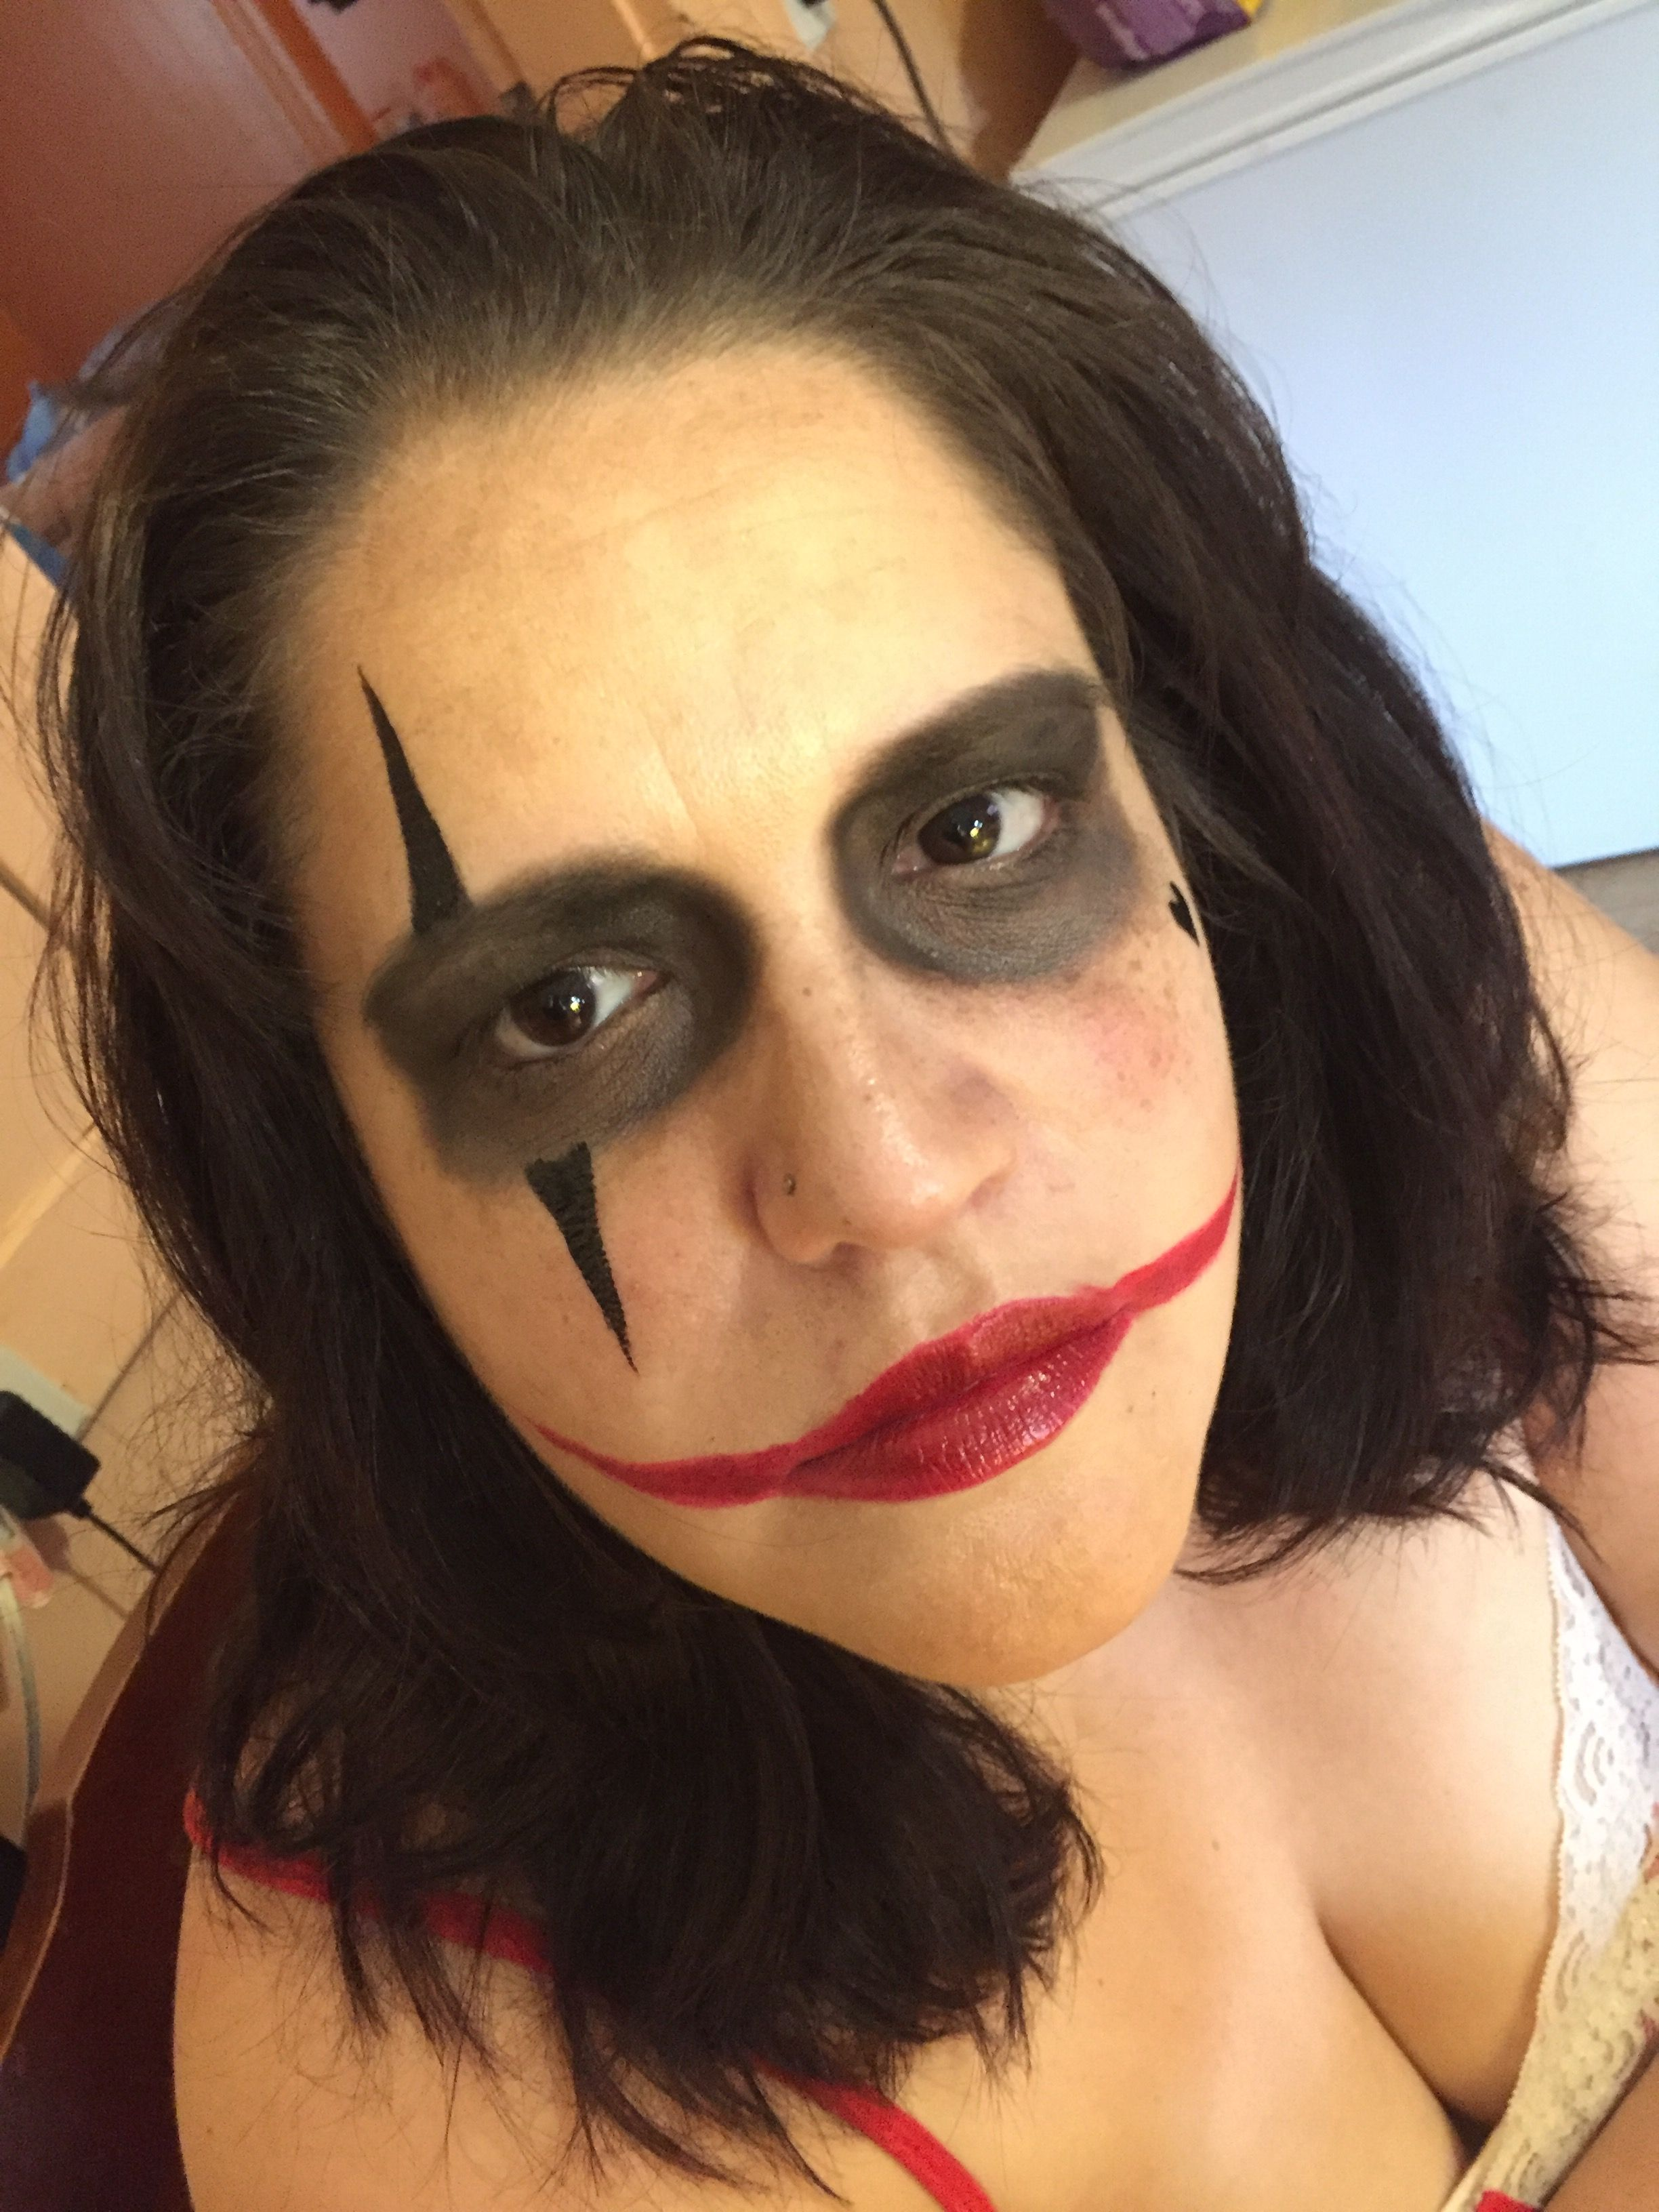 ad freesample halloweenwithglimmer Face makeup